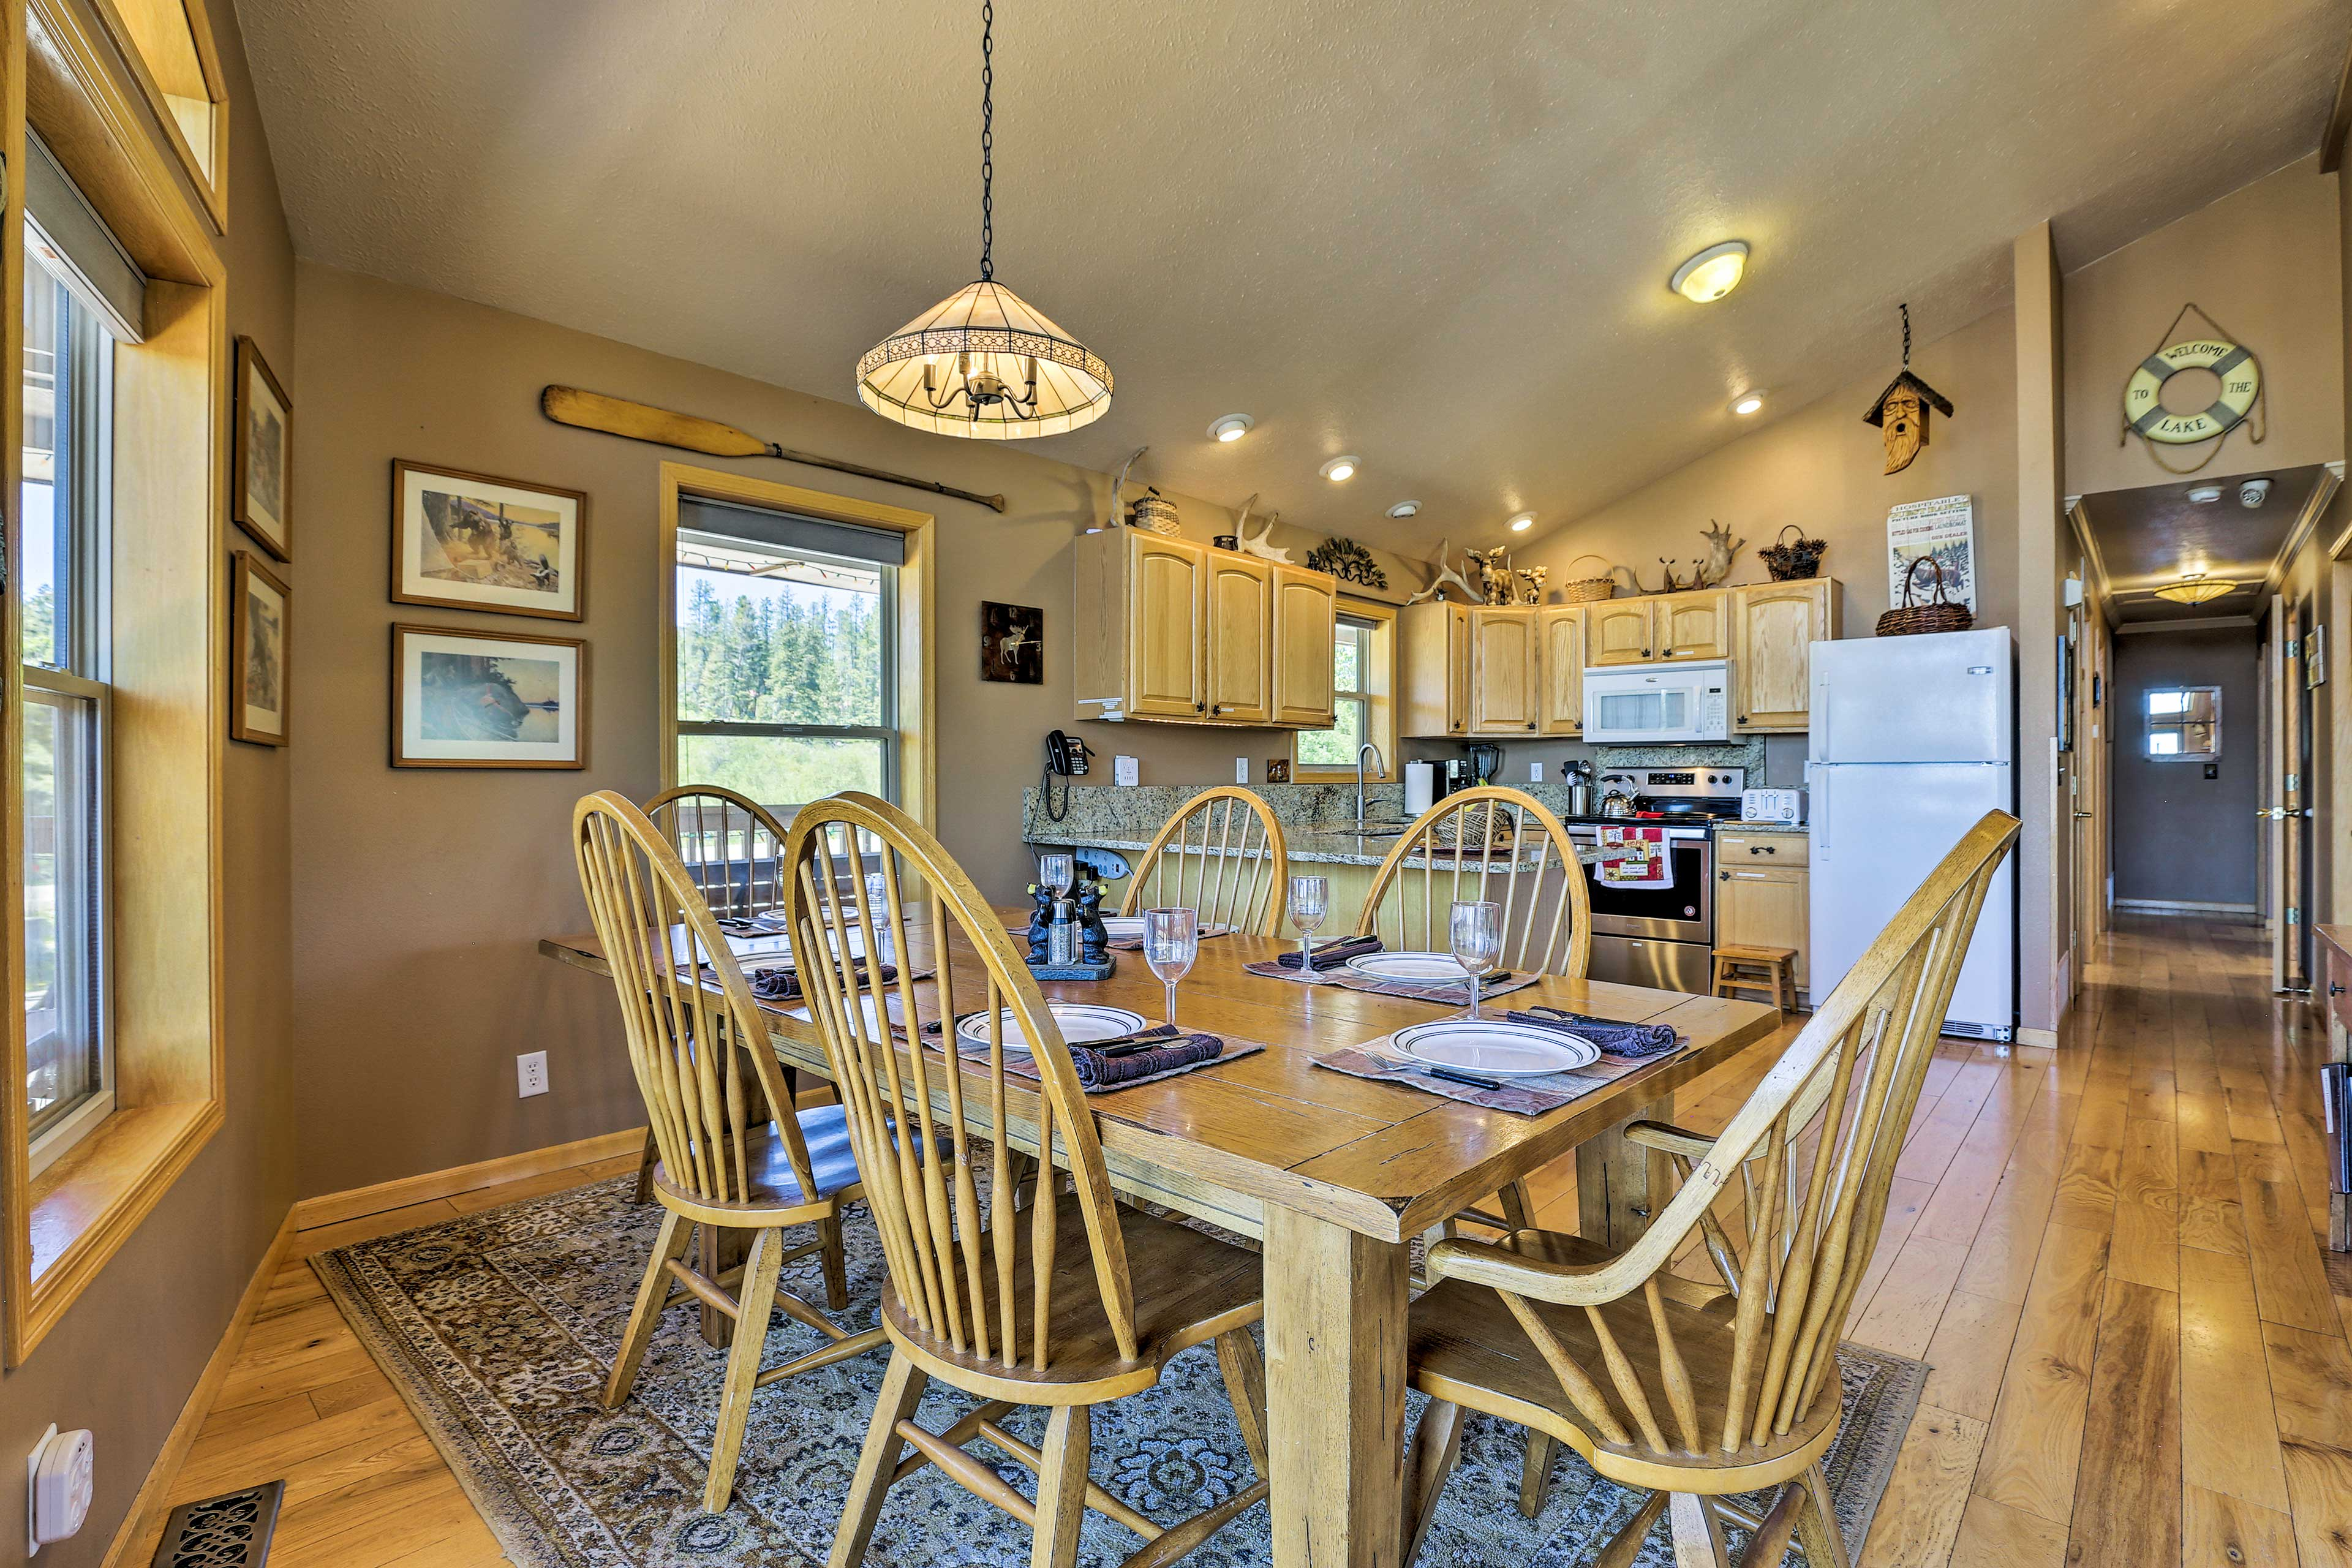 Wine and dine around the dinner table during your stay!